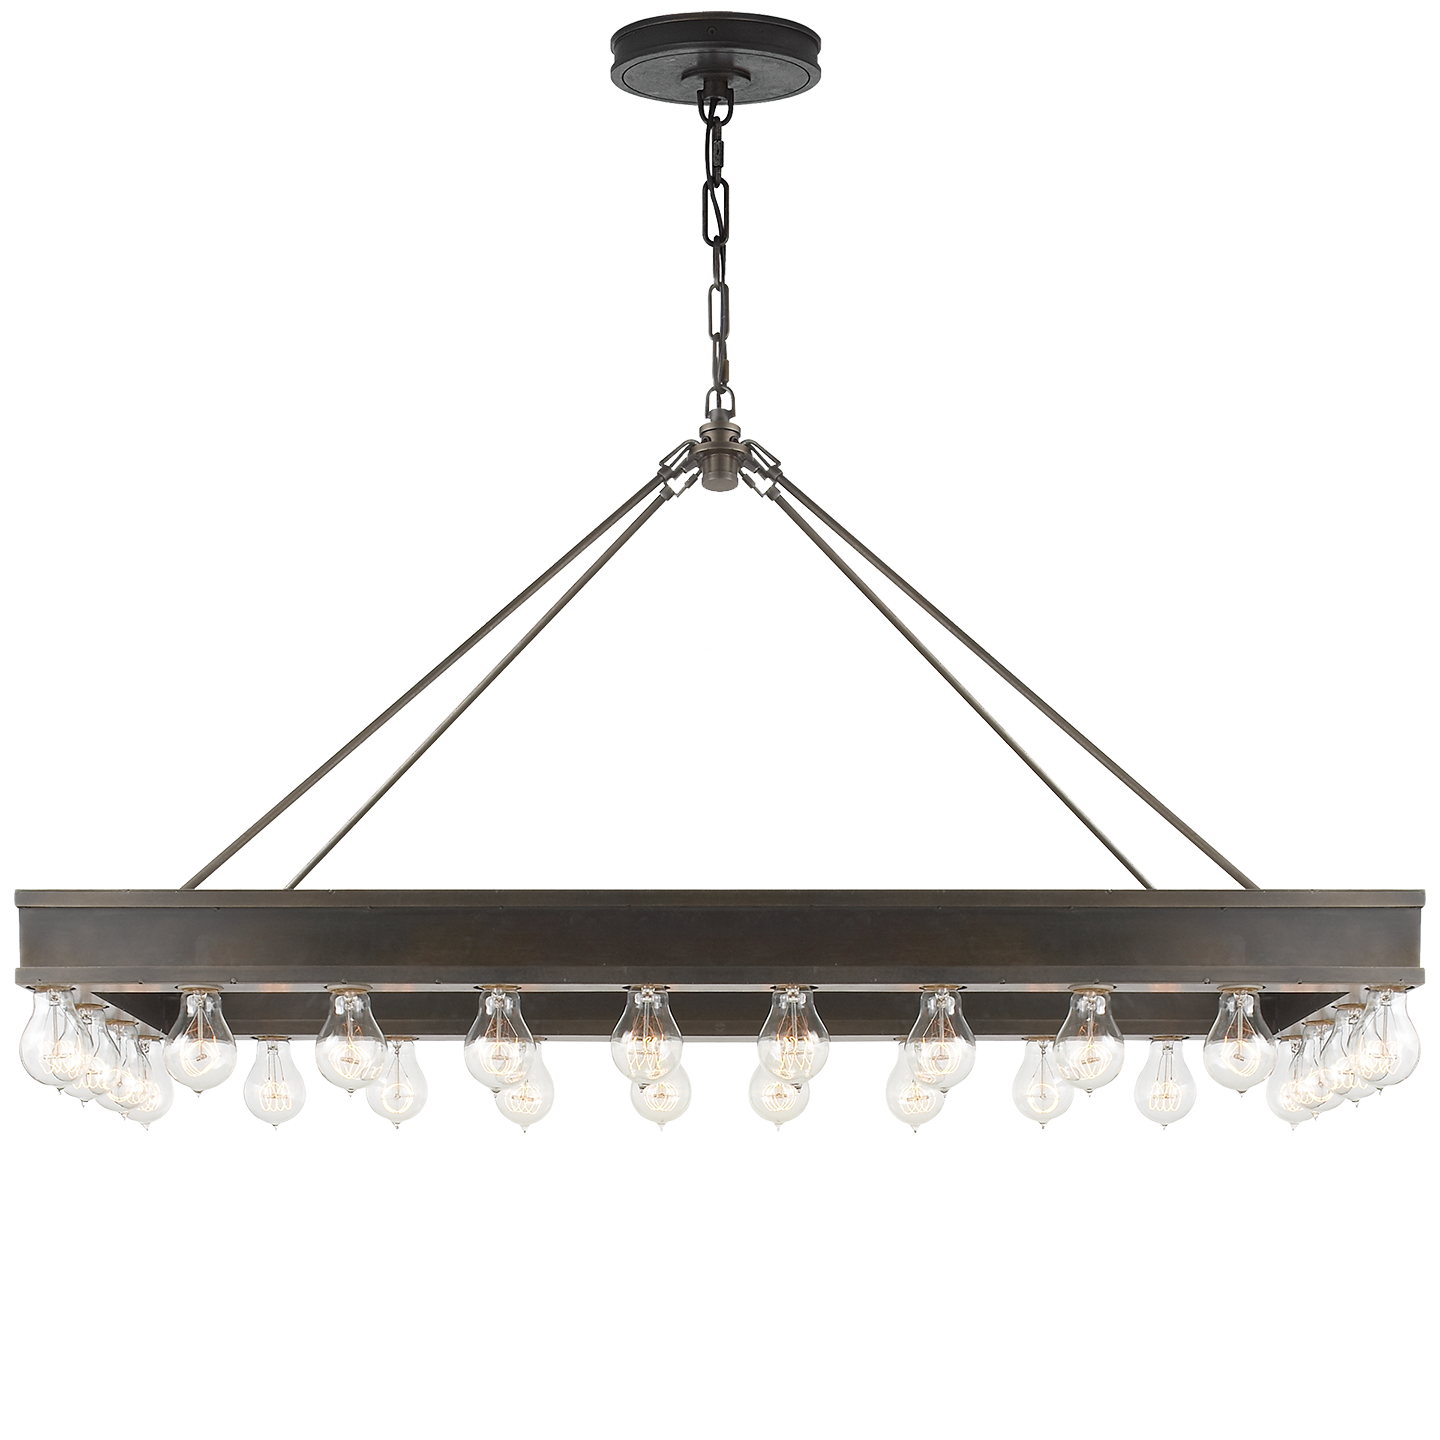 Roark rectangular chandelier in aged iron item rl 5134ai designer roark rectangular chandelier in aged iron item rl designer ralph lauren height width 45 x canopy round socket 24 keyless wattage 24 40 a bulb mozeypictures Images